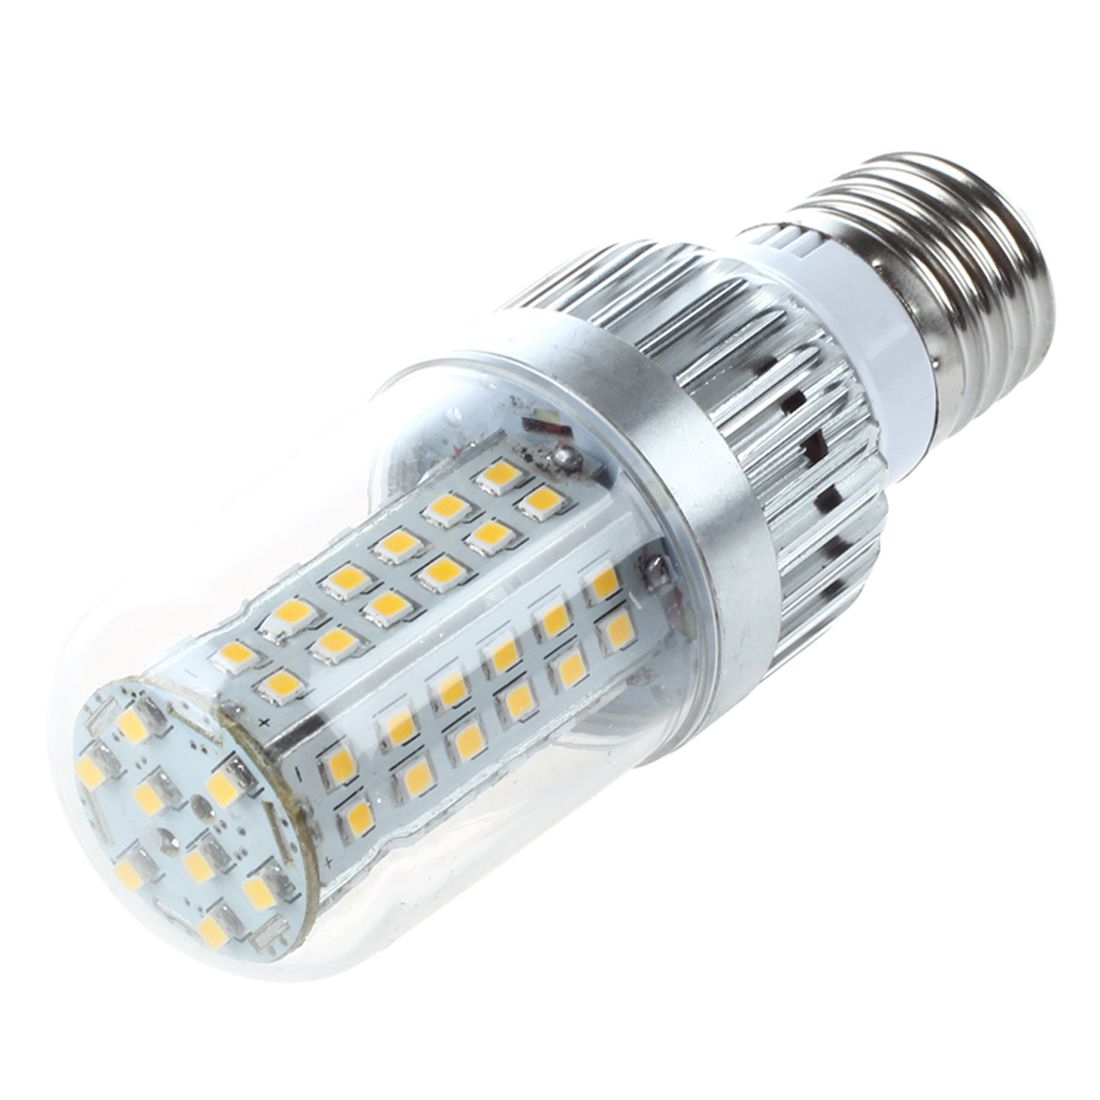 CSS E27 7W SMD Corn Bulb LED Light 700LM warm white lamp replacement 60W Bulb ...